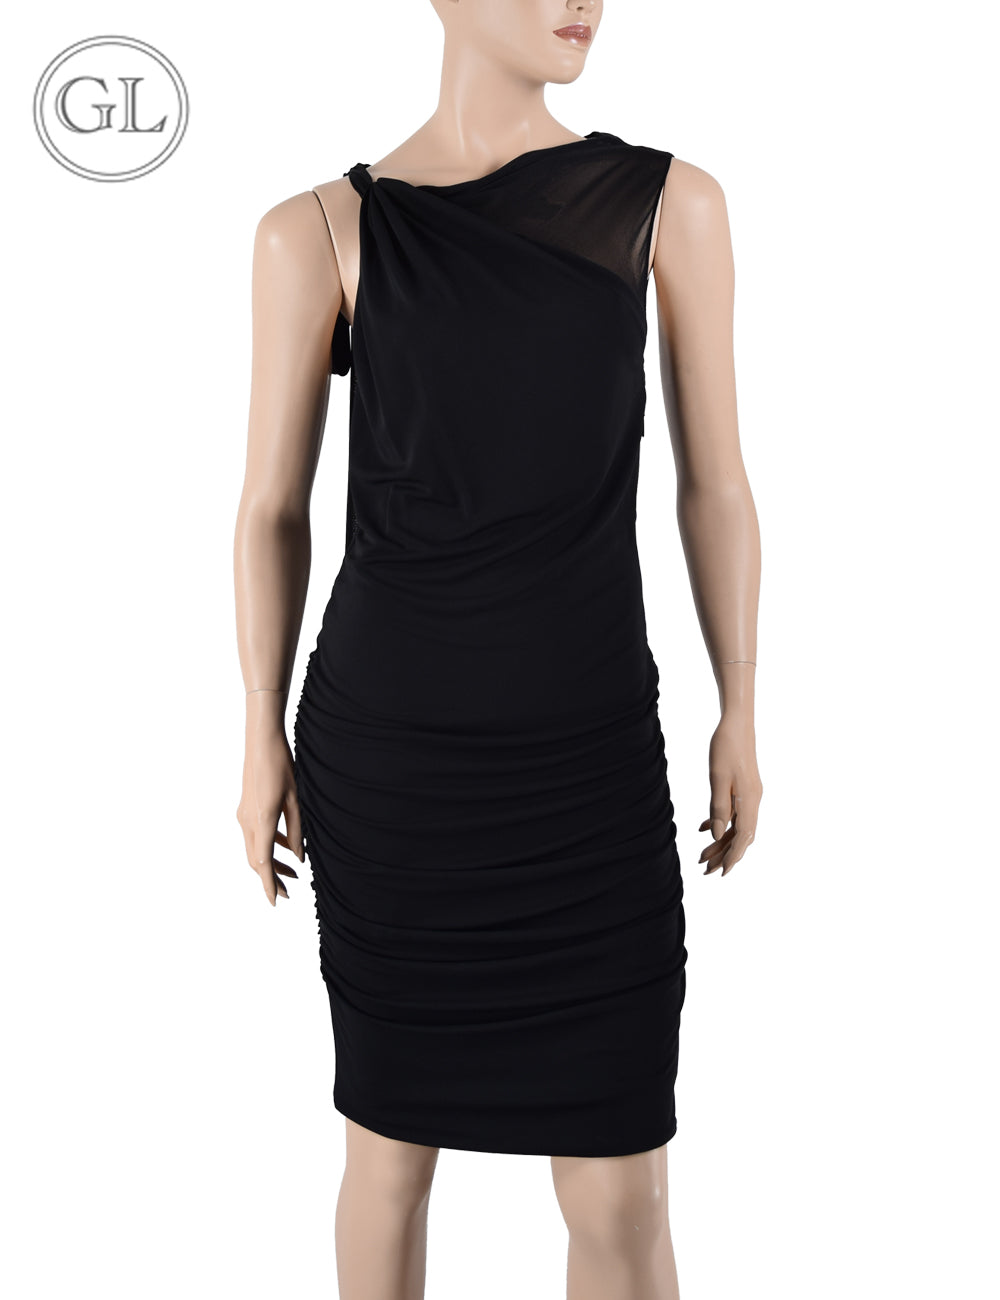 Roberto Cavalli Black Dress - US 6